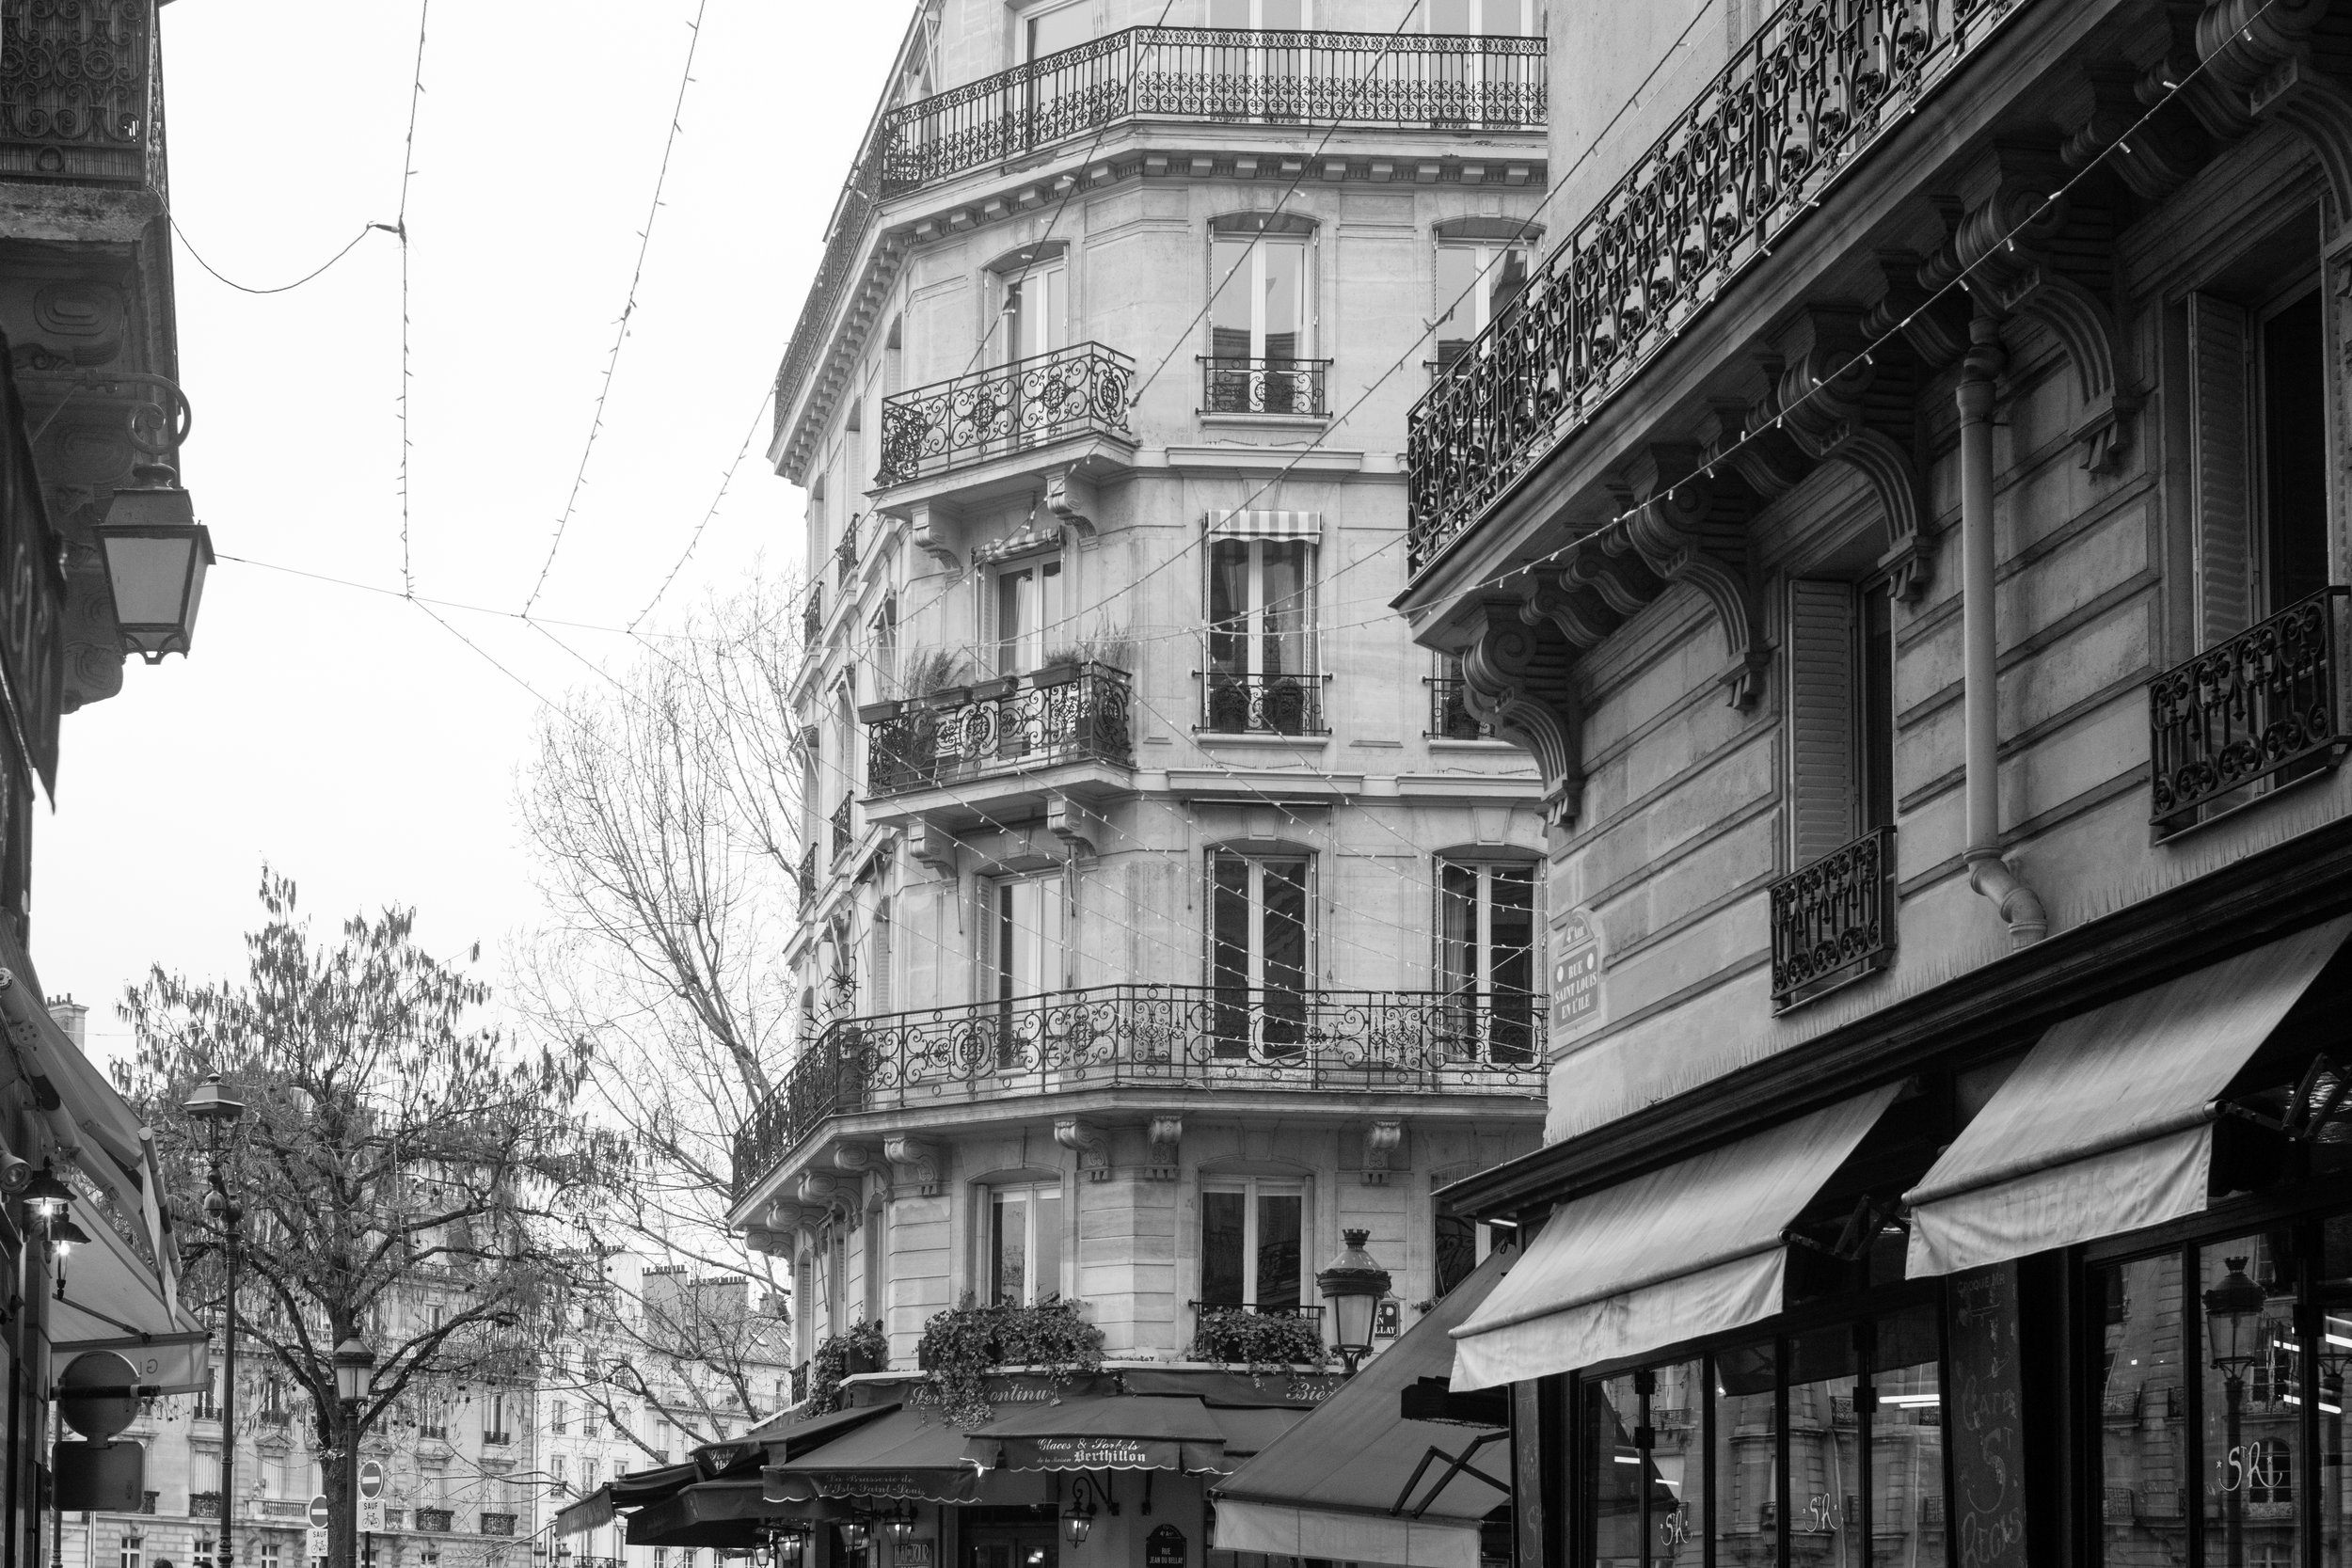 paris france ile st louis black and white